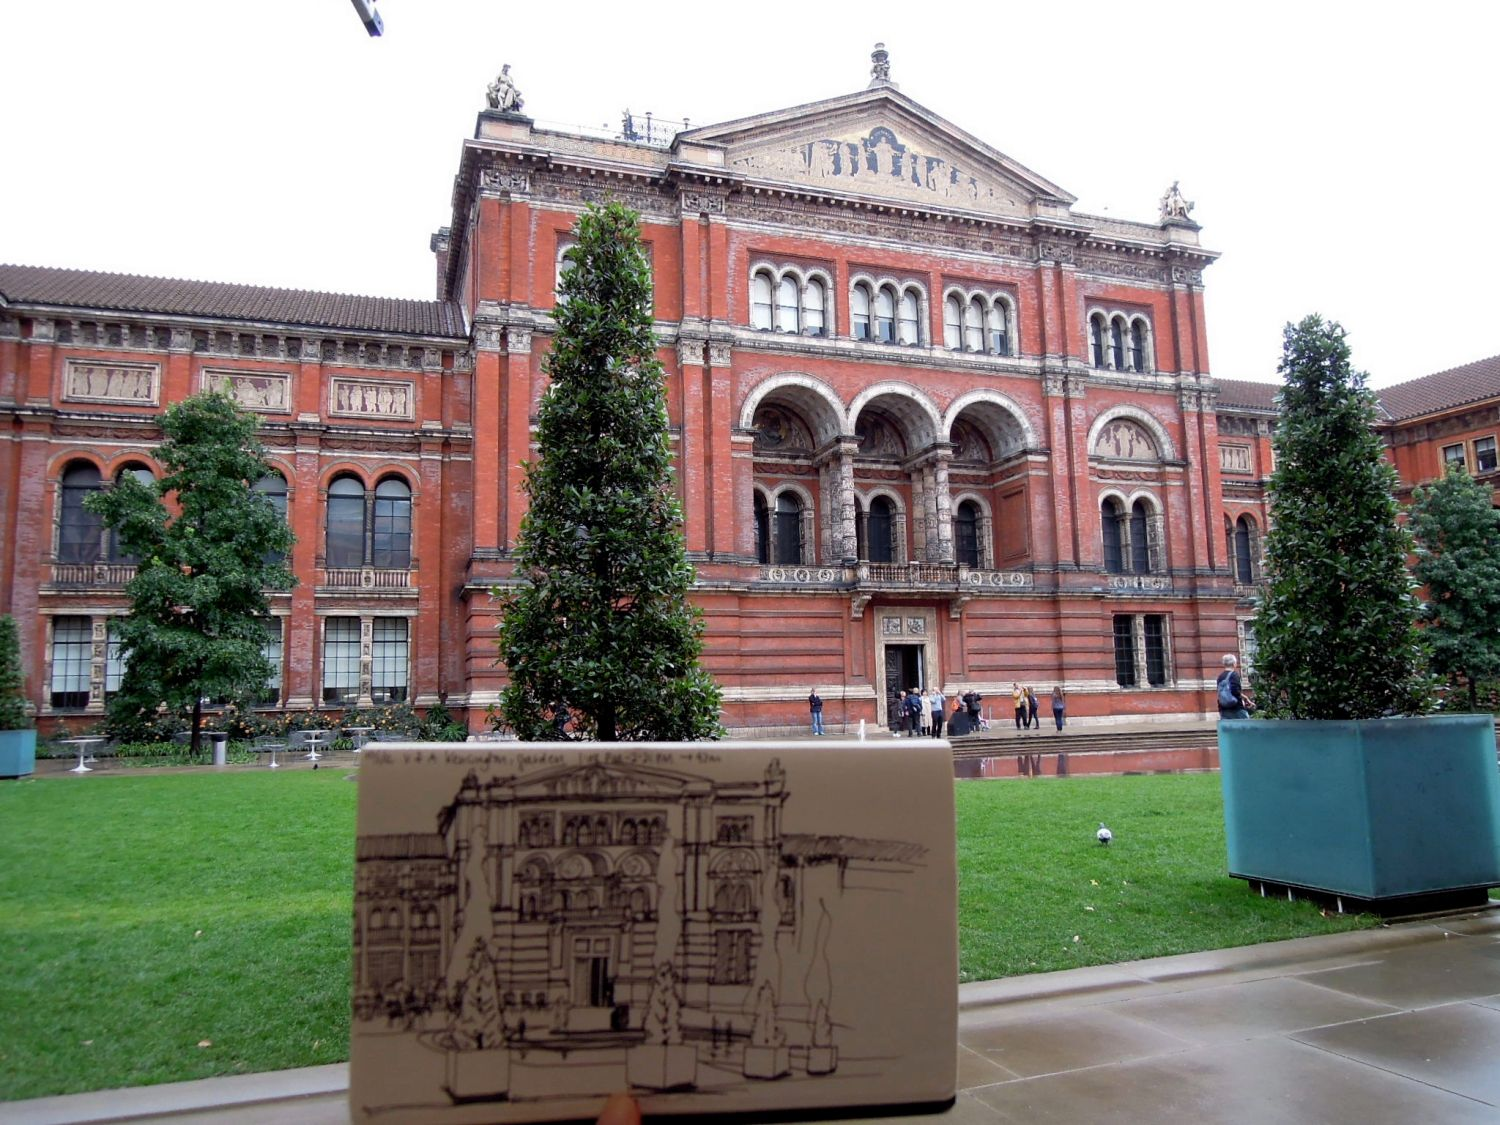 Sketch at the V&A garden